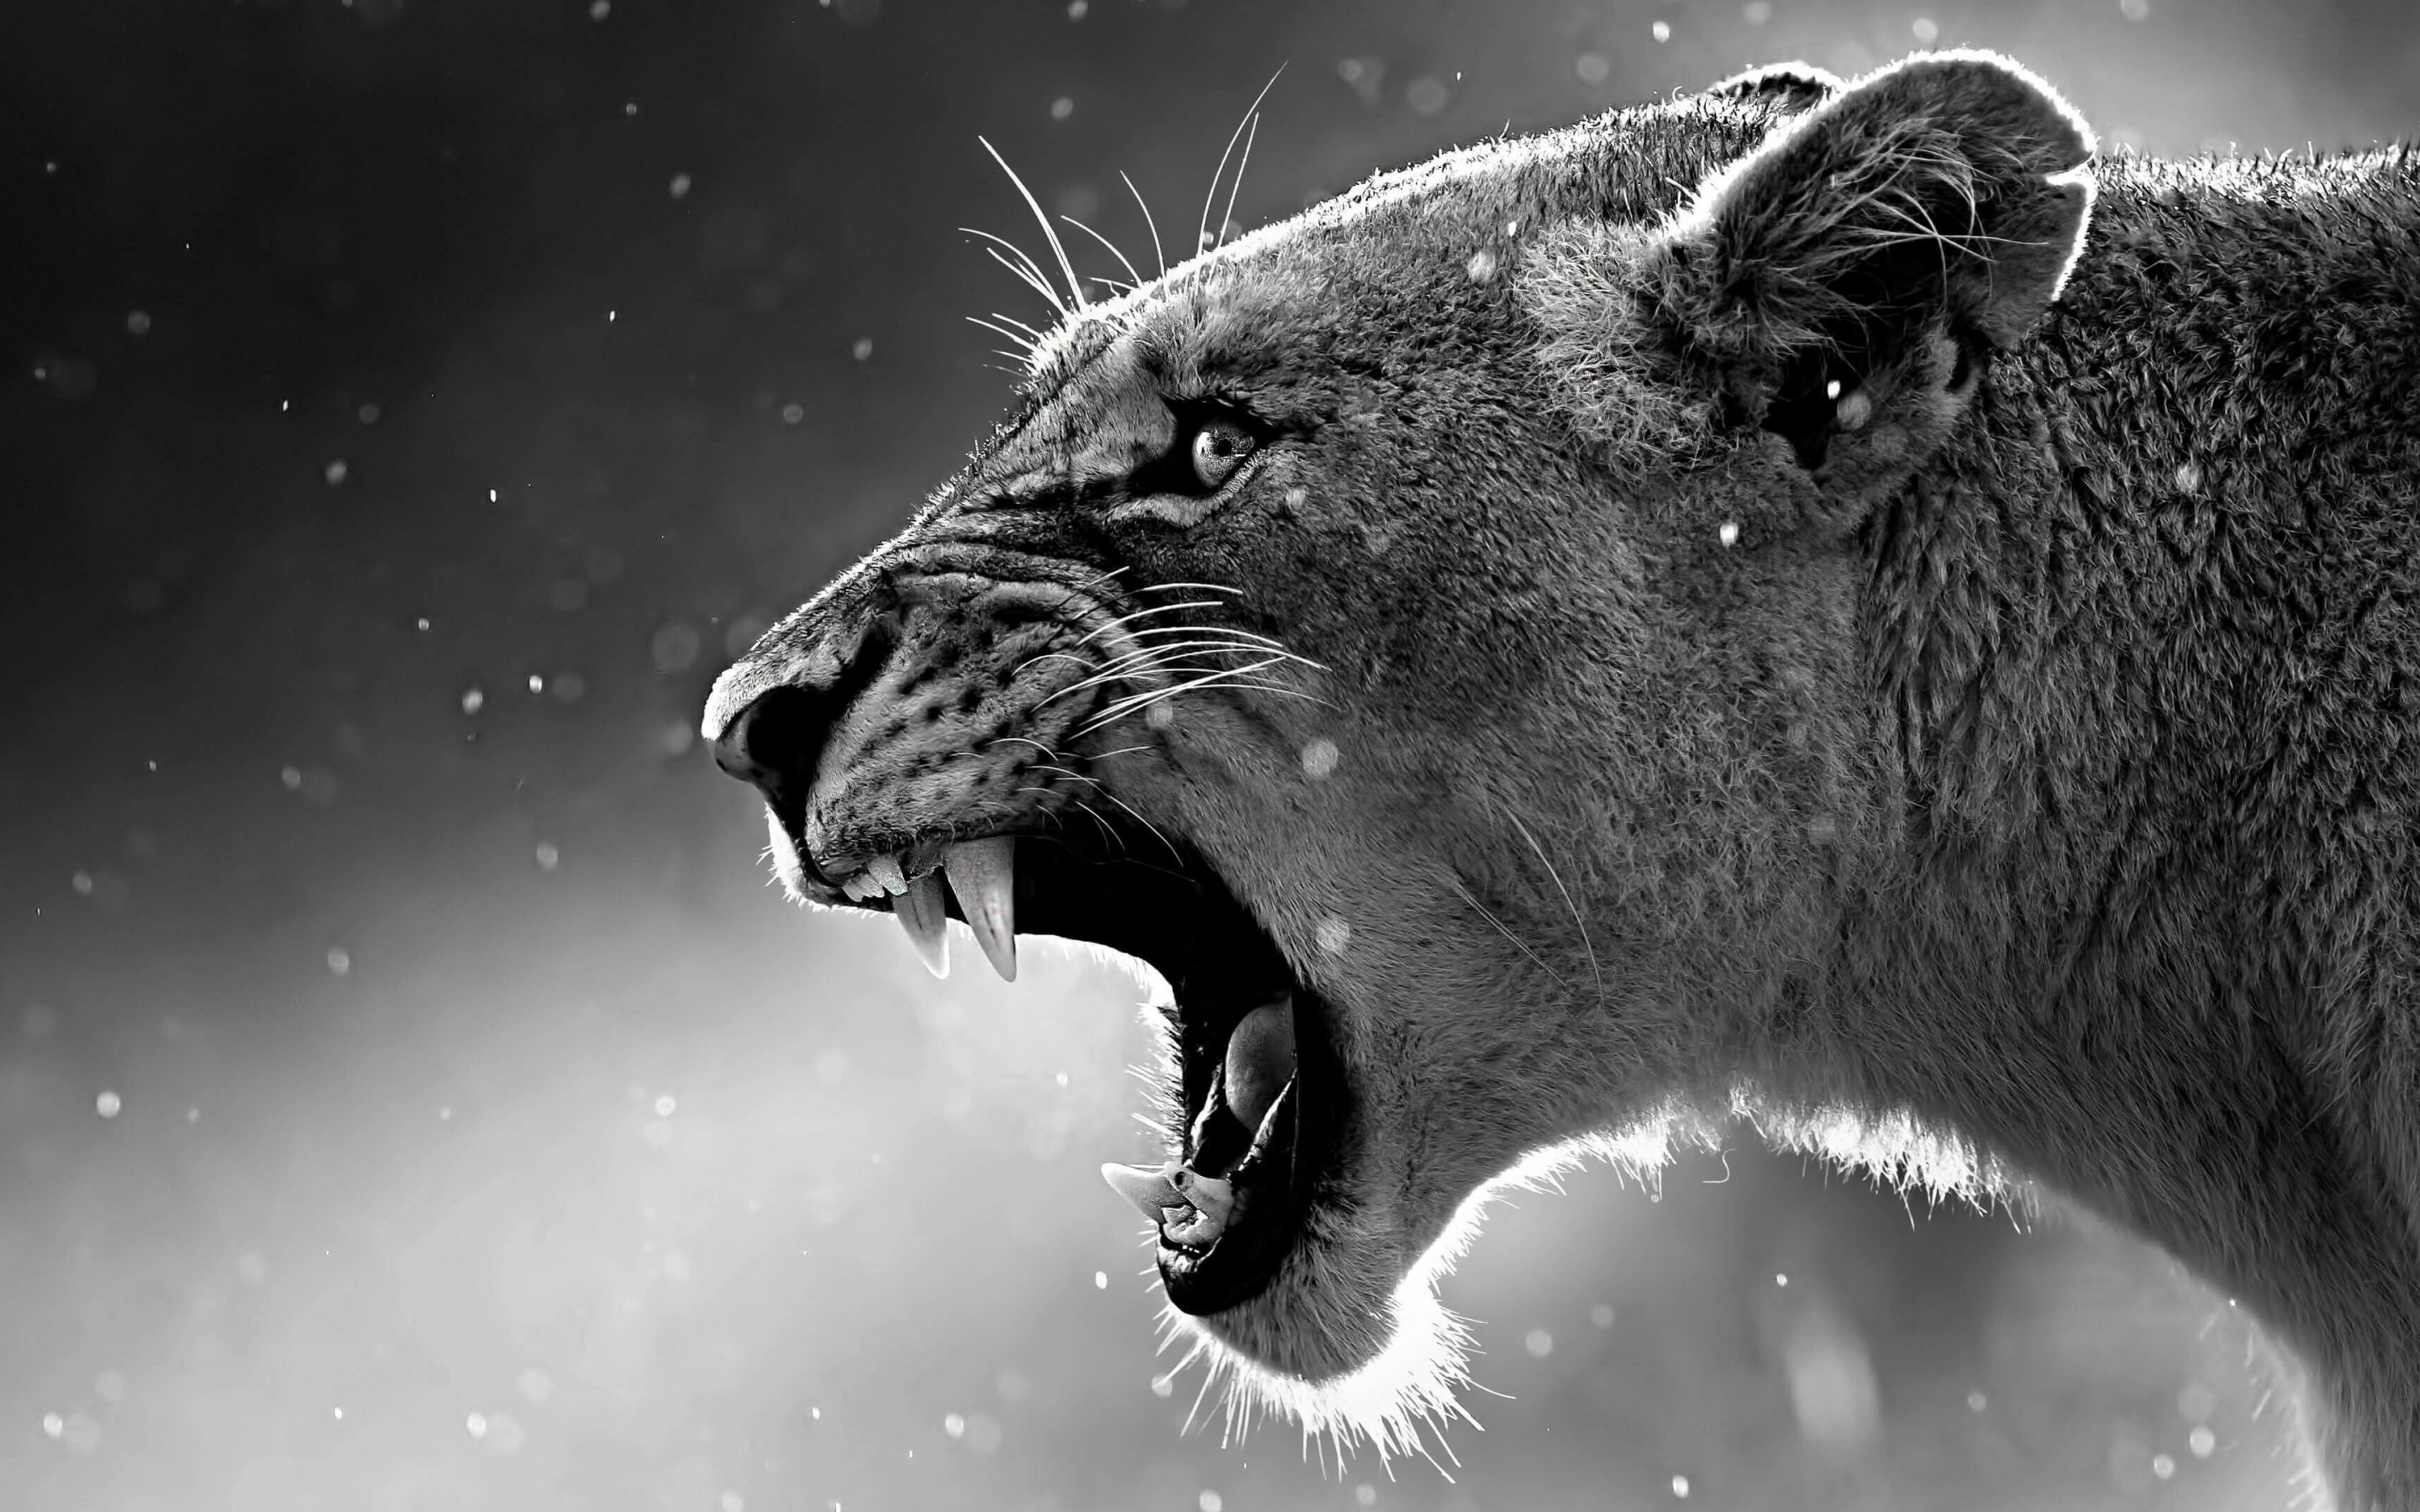 Lioness in Black & White Wallpaper for Desktop 2880x1800